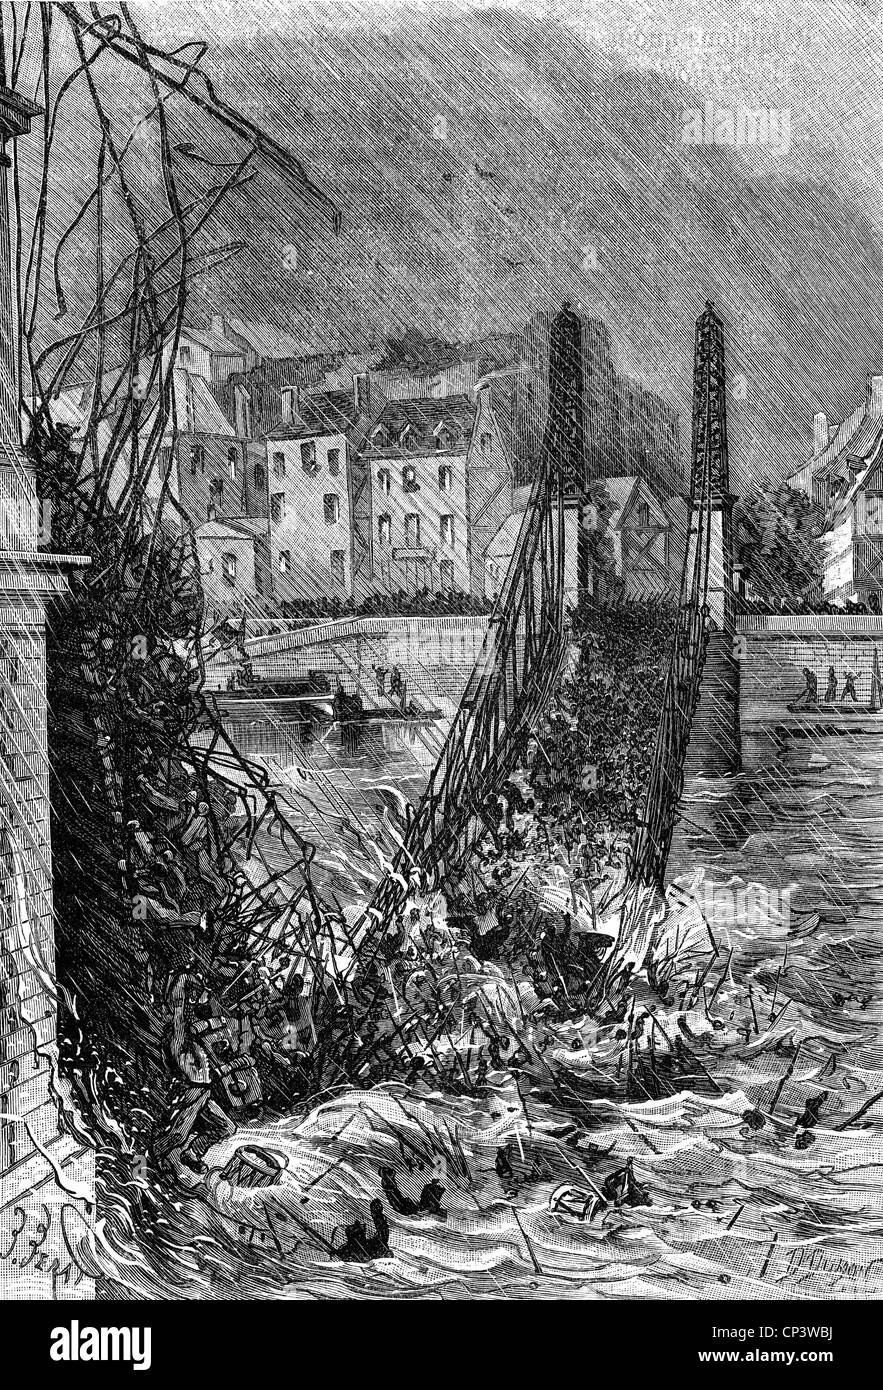 disasters, structural failures, Angers Bridge collapse, France, 16.4.1850, Additional-Rights-Clearences-NA - Stock Image